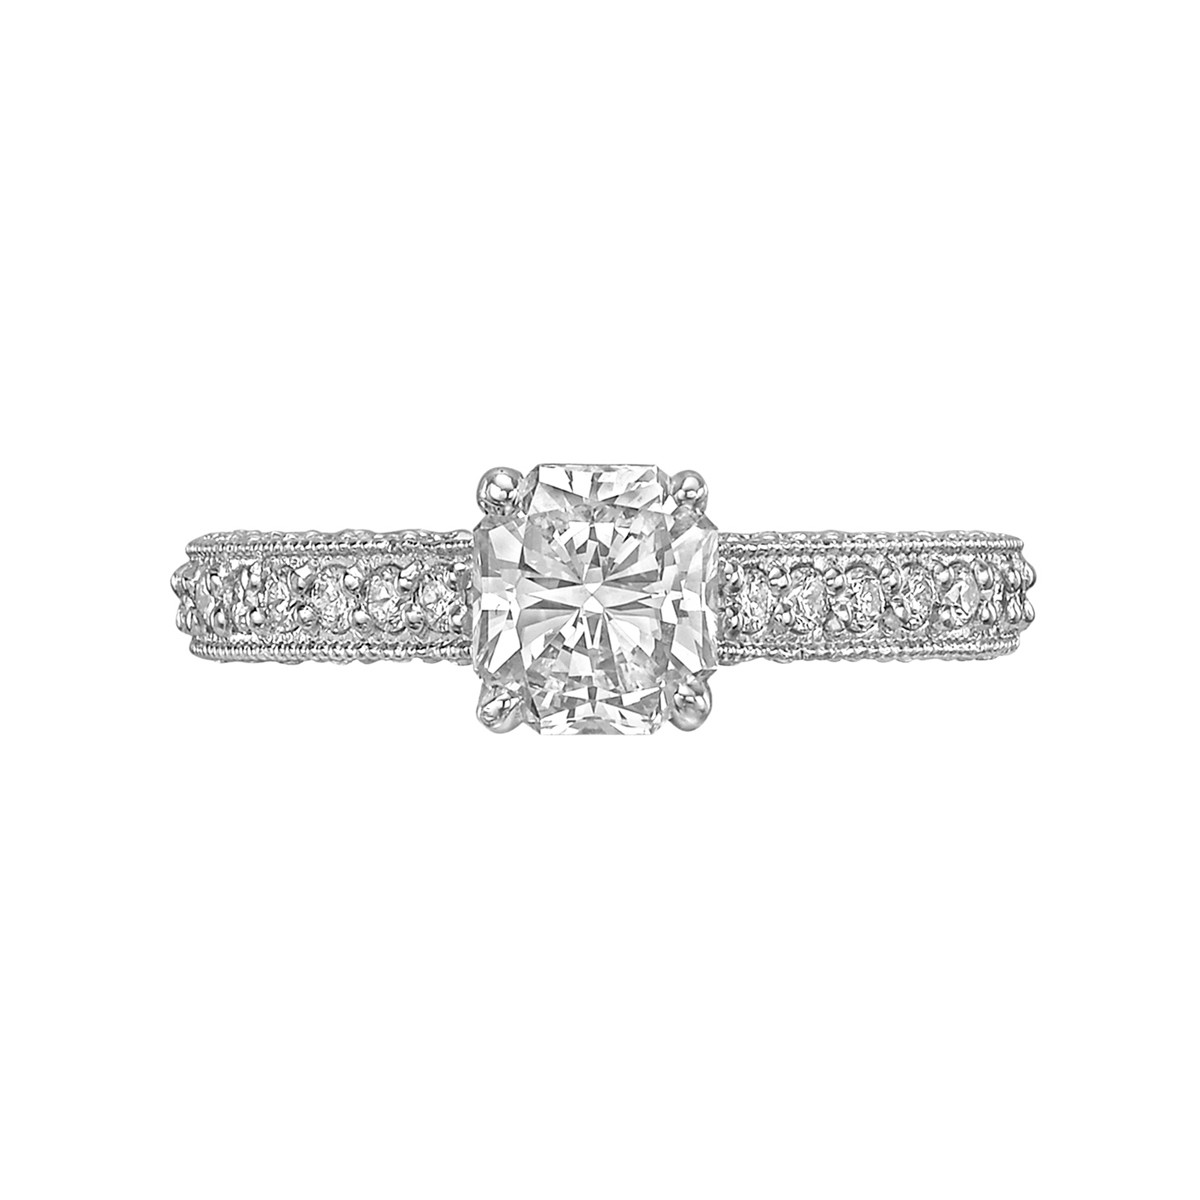 1.06ct Colorless Radiant-Cut Diamond Ring